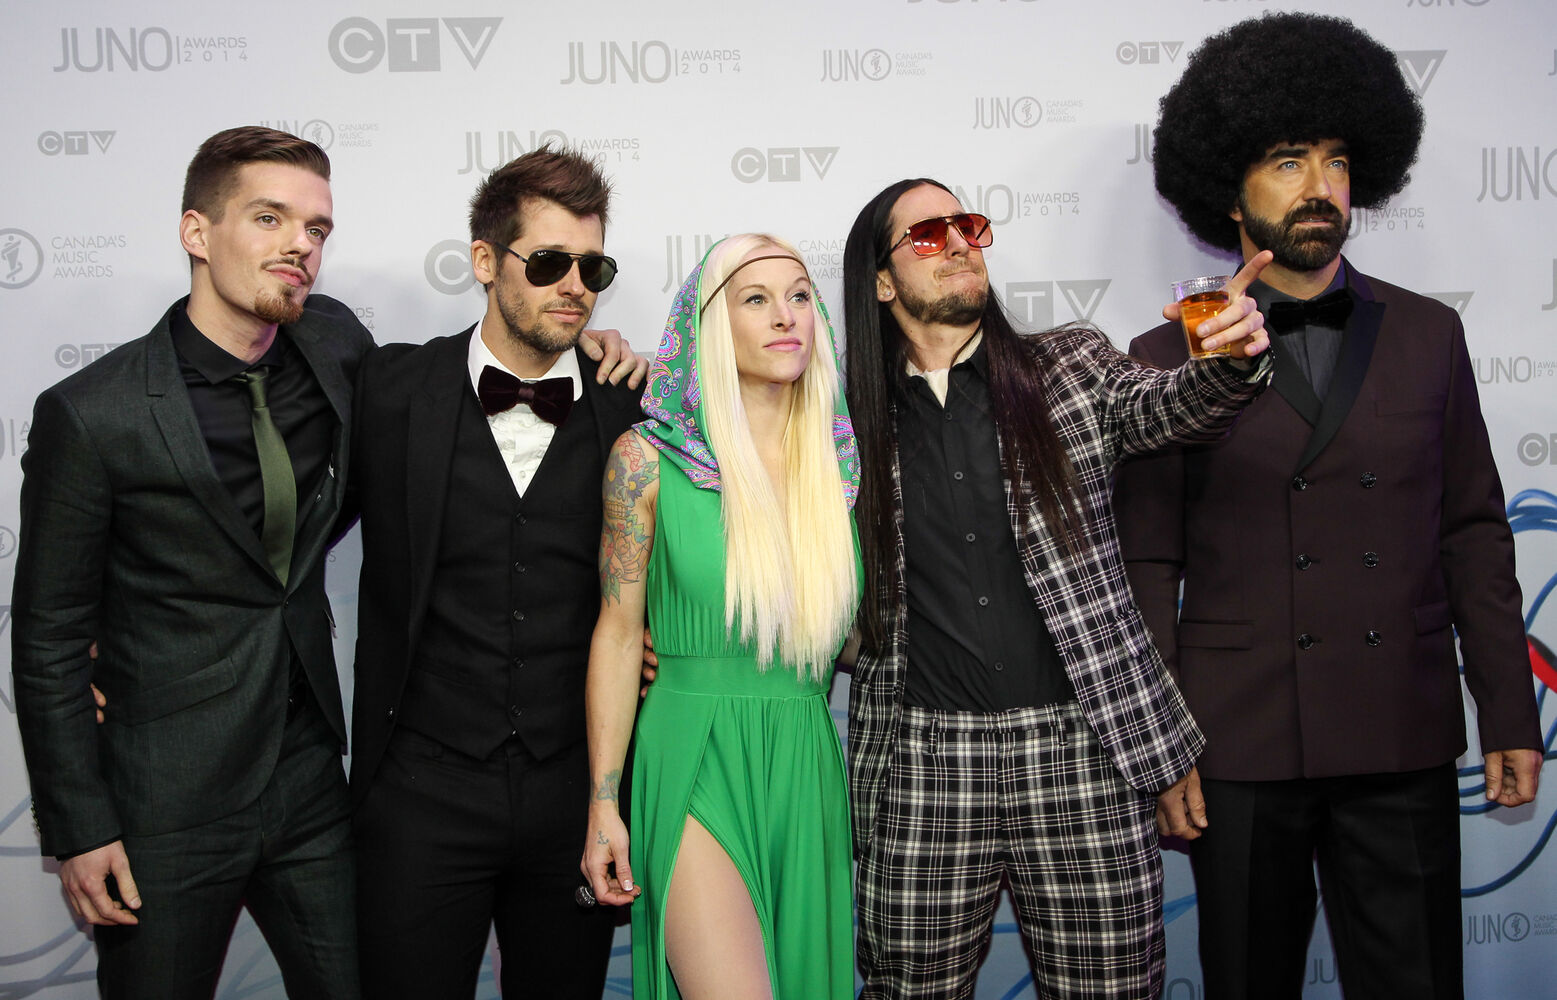 Juno nominees and performers Walk Off The Earth arrive on the 2014 Juno Awards red carpet.